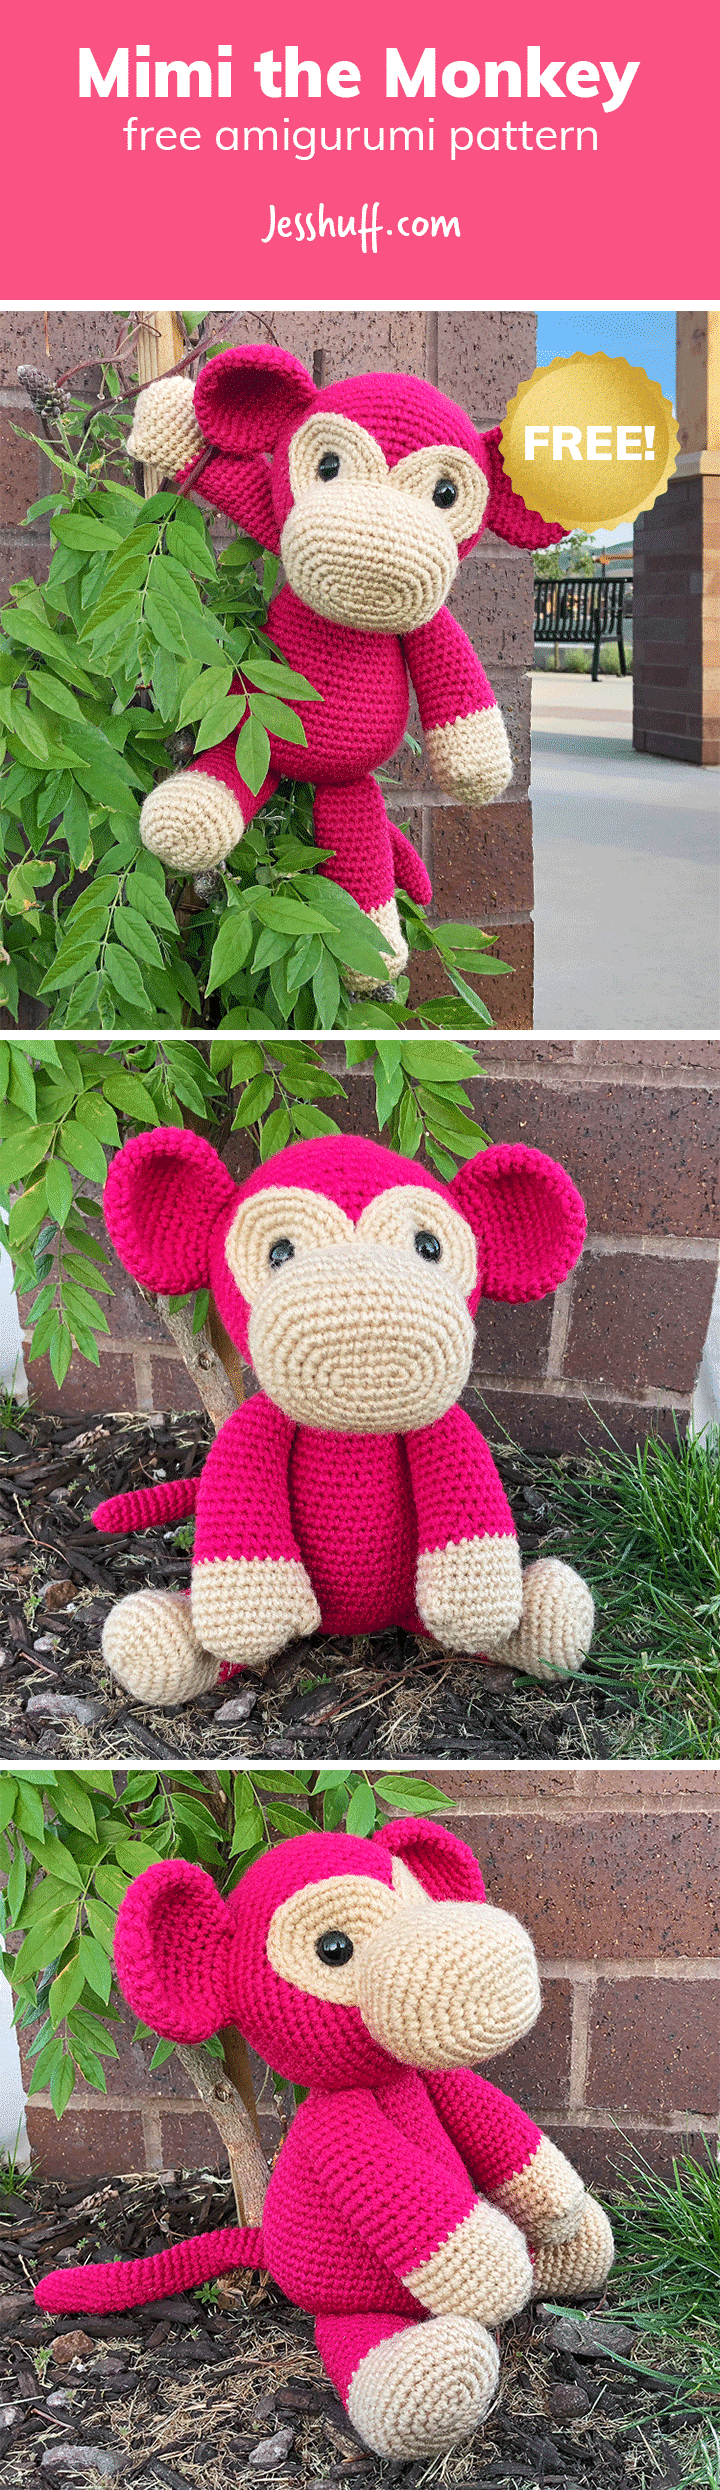 Mimi the Monkey Free Amigurumi Pattern | Jess Huff